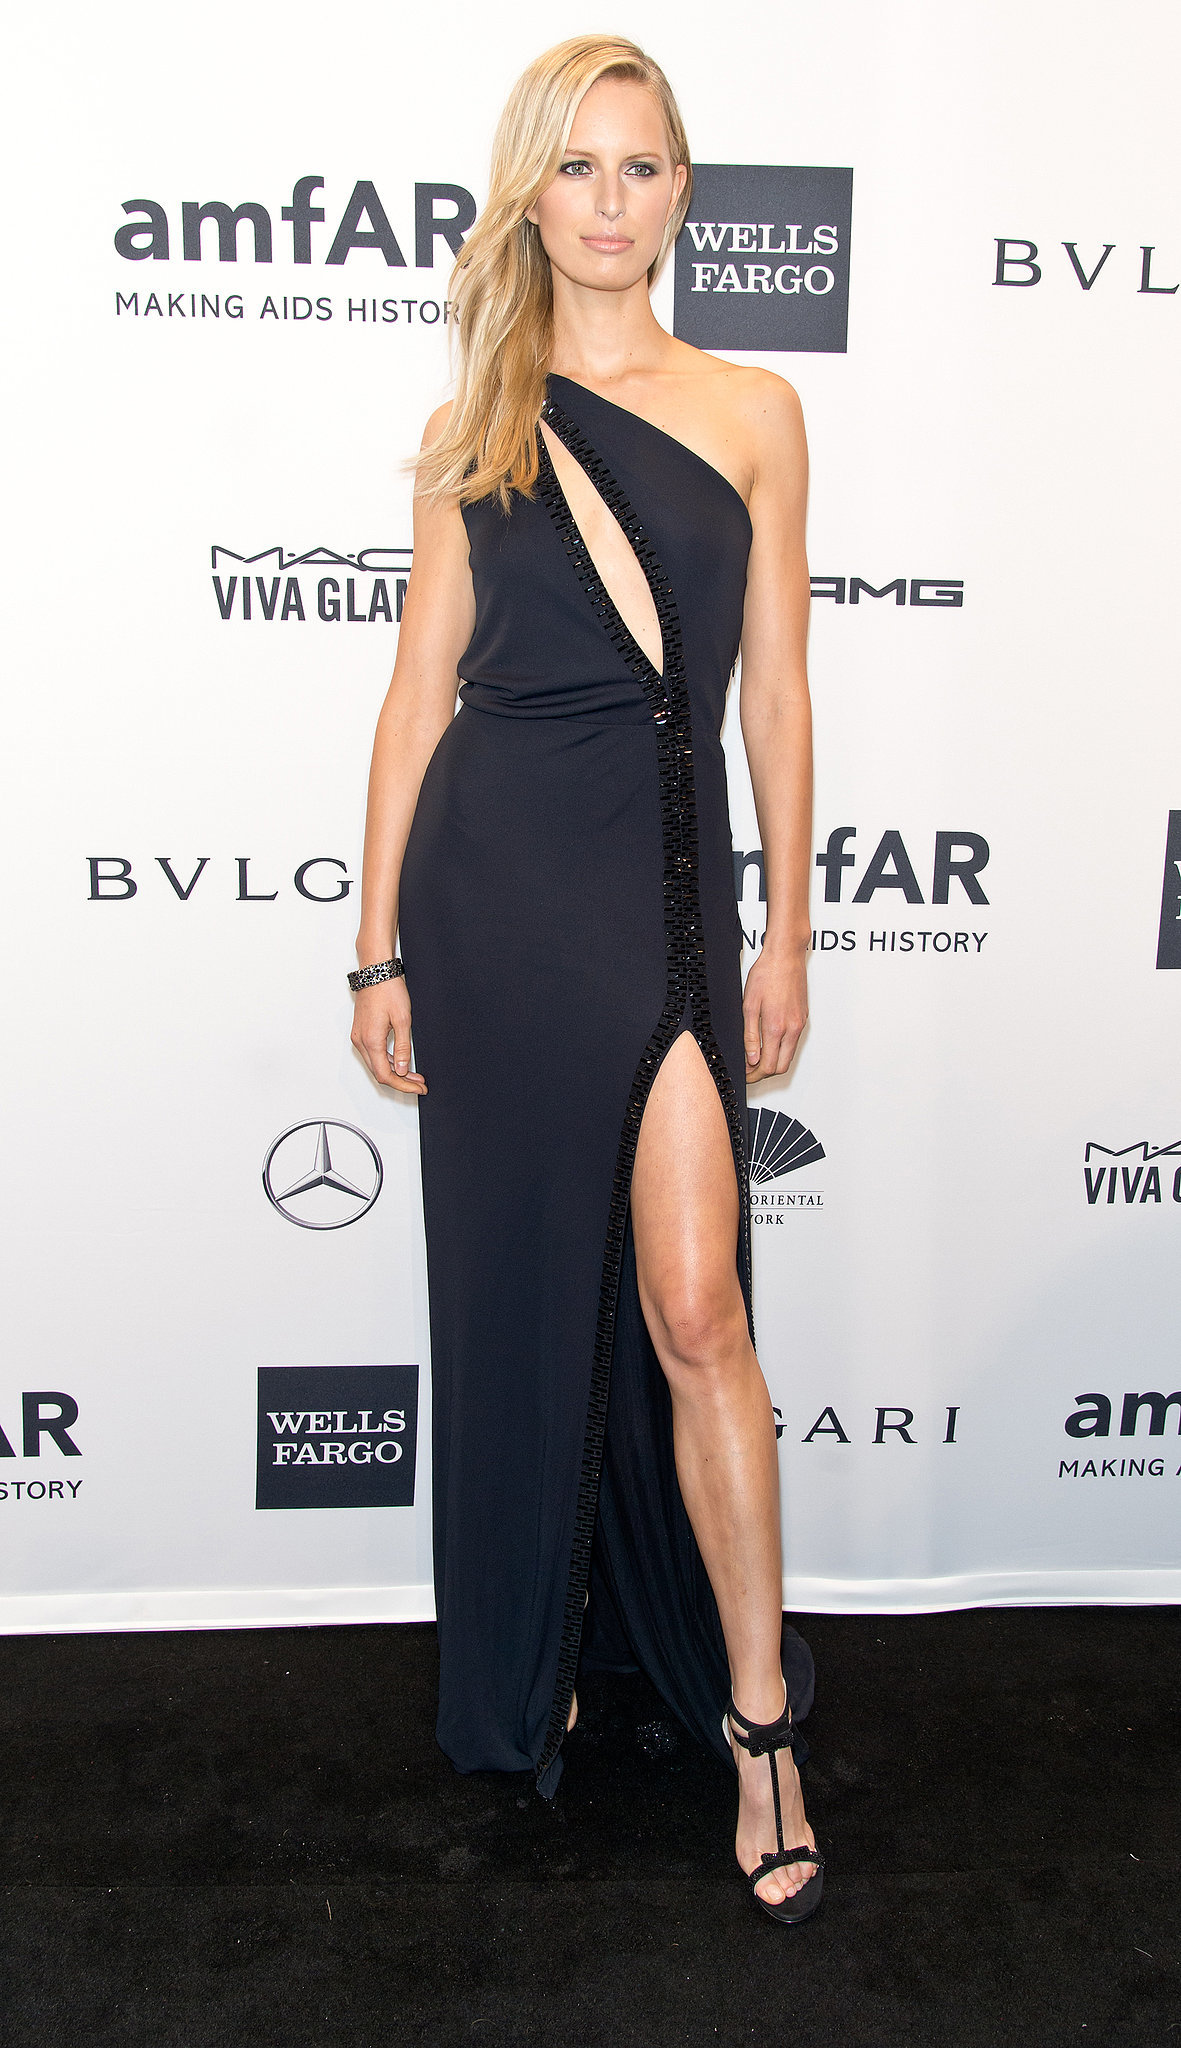 Karolina Kurkova at amfAR's New York Gala.